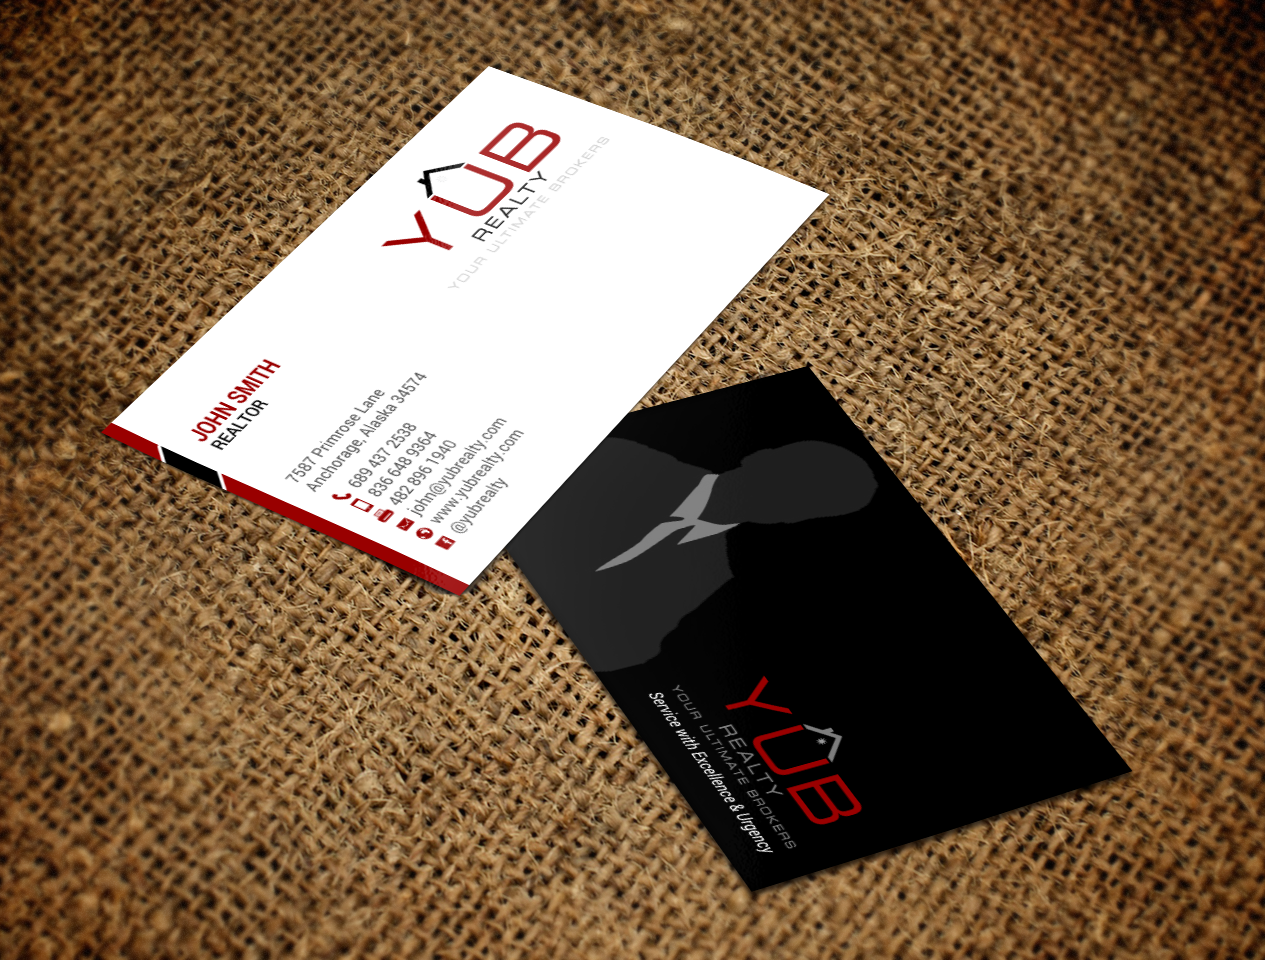 Upmarket elegant real estate agent business card design for red business card design by chandrayaaneative for red empresario design 16890558 reheart Gallery